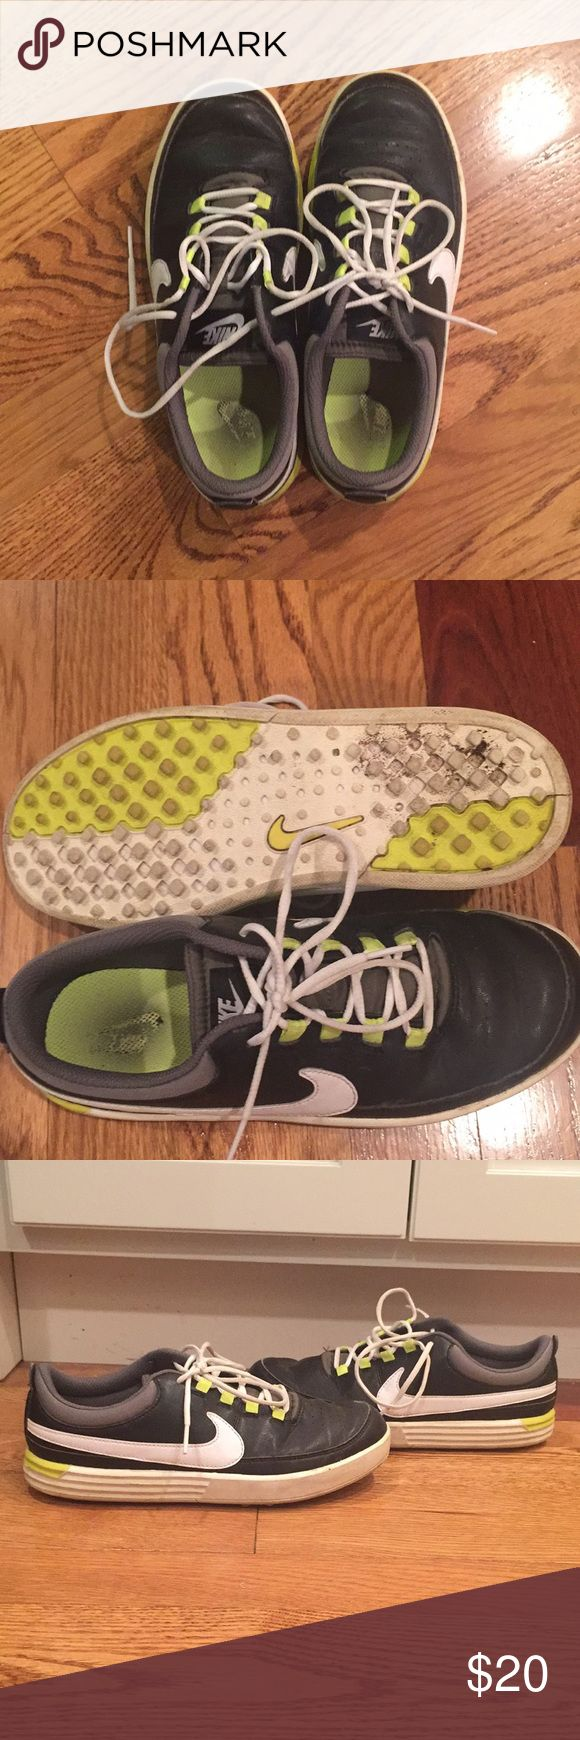 Kids Nike golf shoes size 4Y These are used golf shoes but they definitely have a lot of life left in them!  Great Nike golf shoes for any beginner golfer 🏌️ Nike Shoes Sneakers